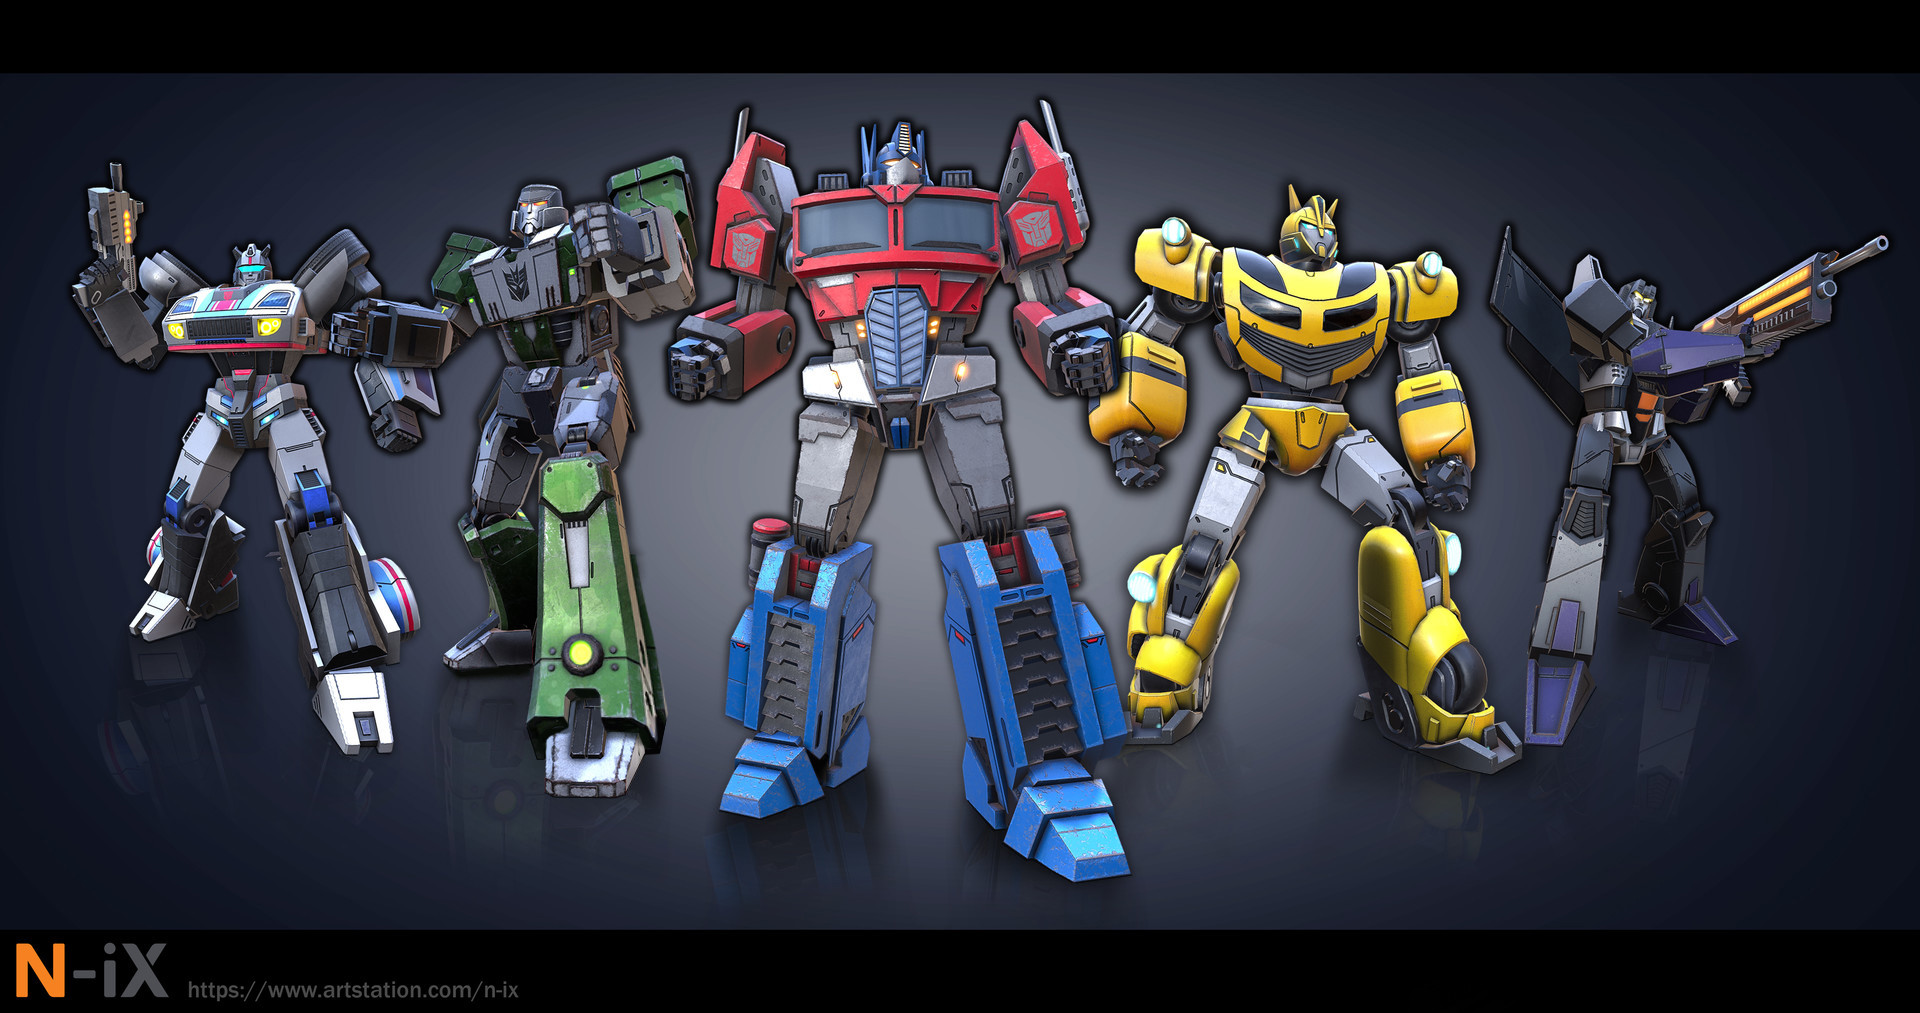 Unused Transformers Concept Art By N-iX Art Production